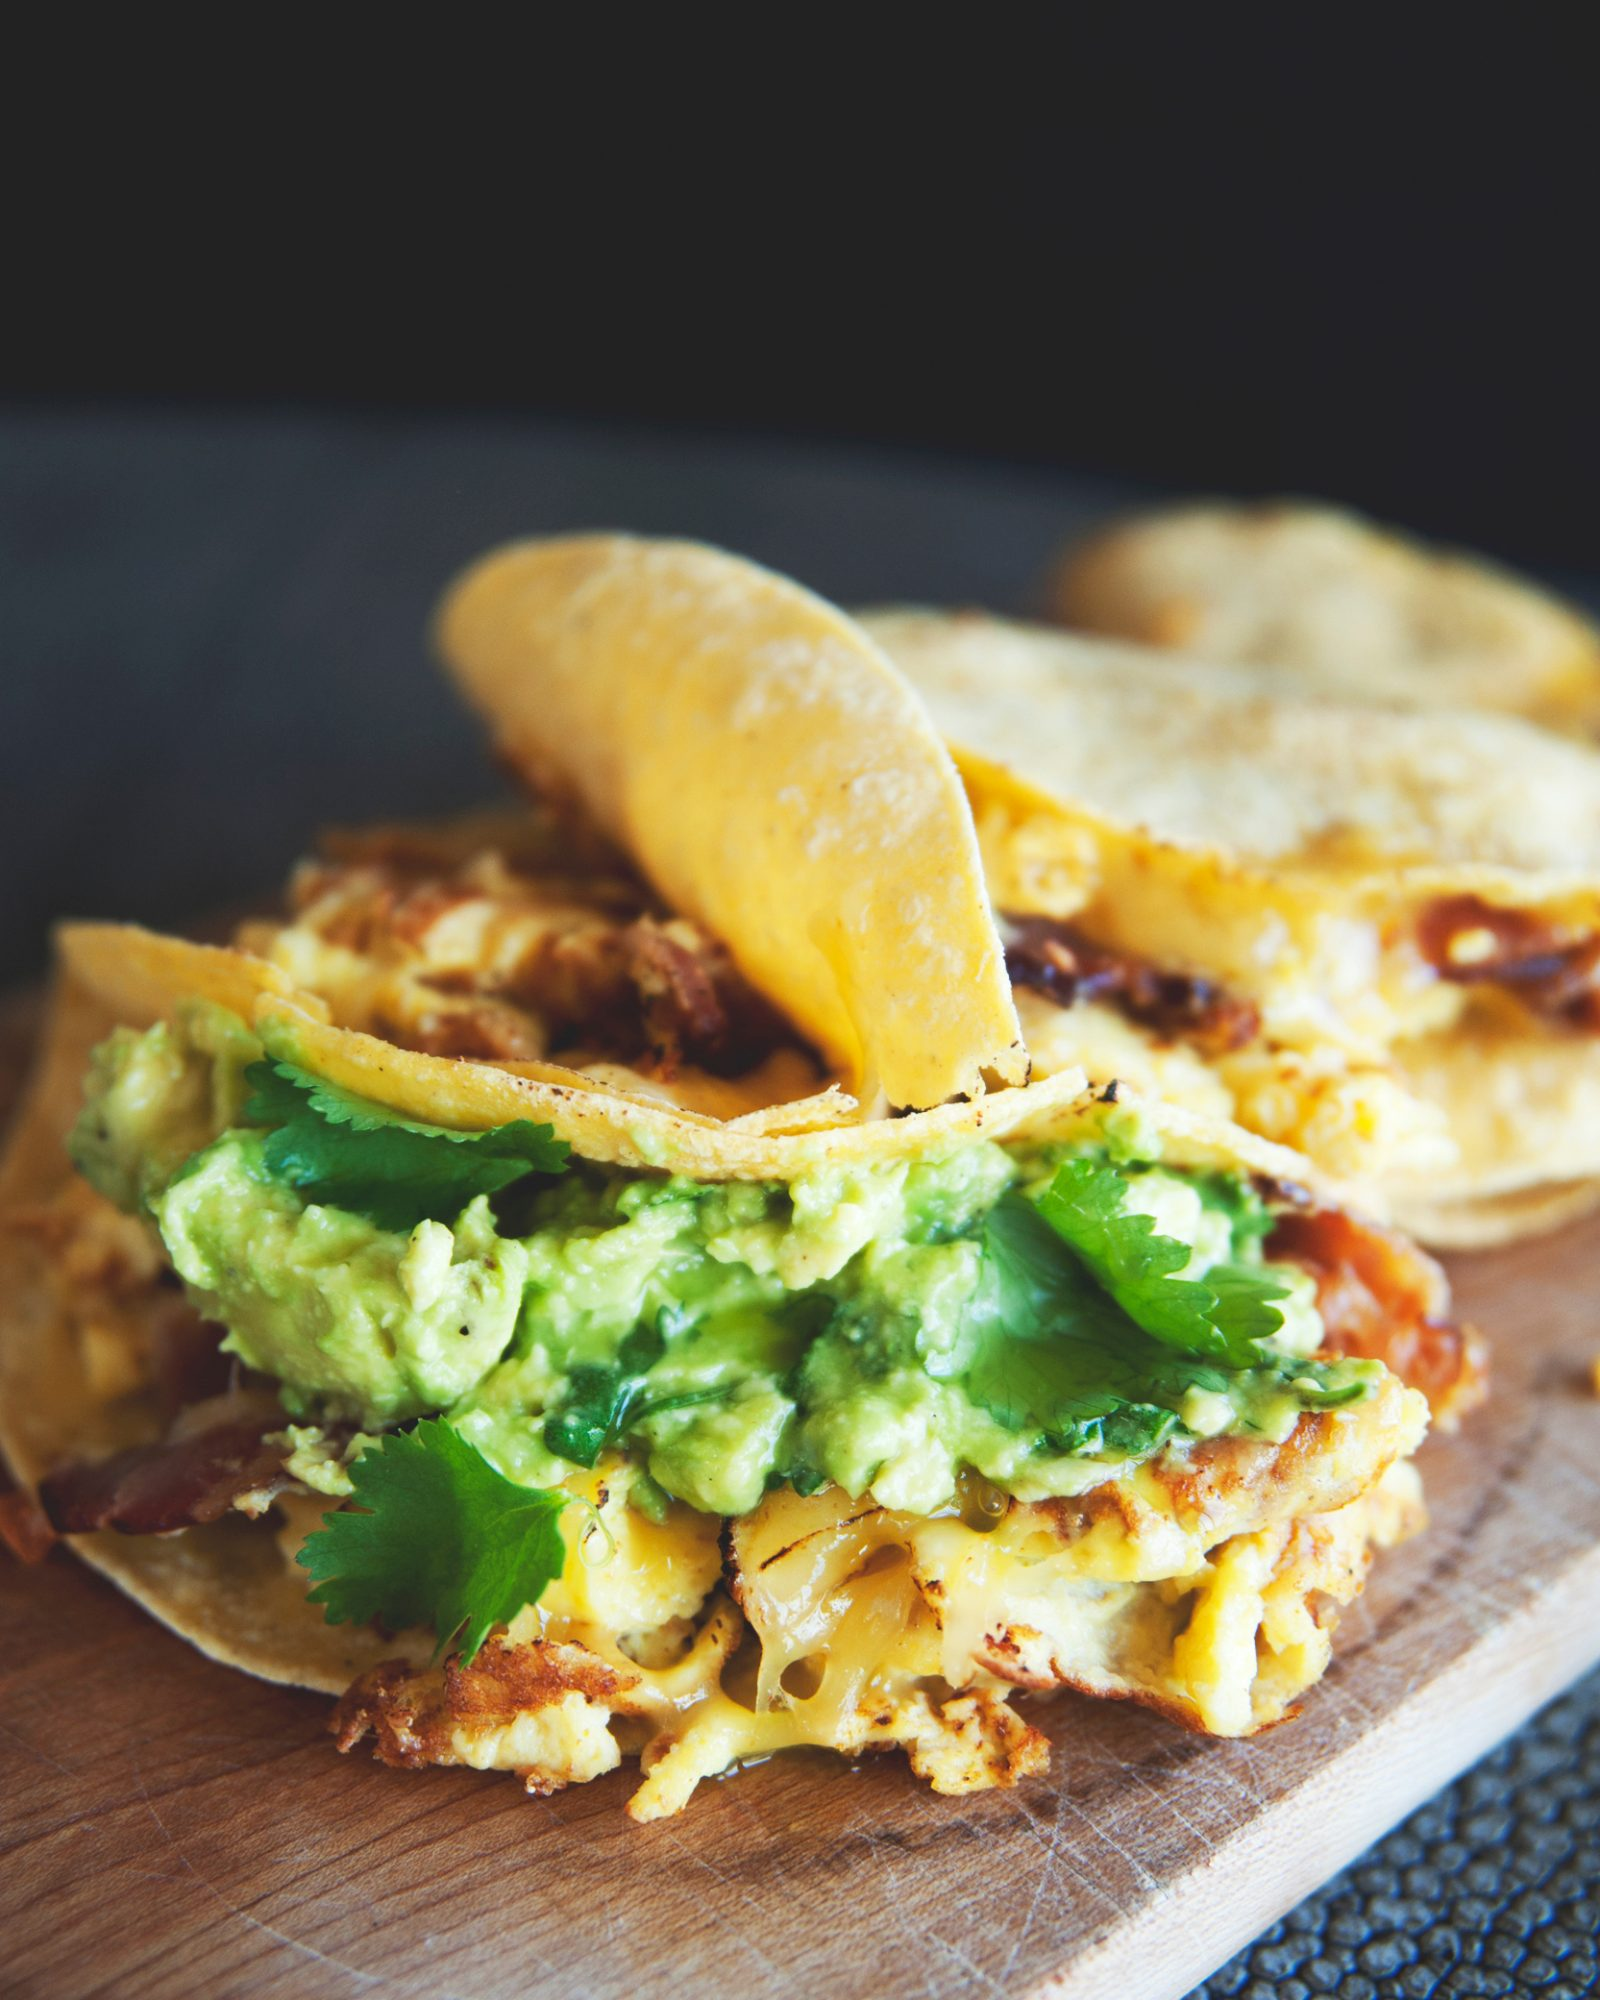 claire-thomas-valentines-day-breakfast-tacos-0215.jpg